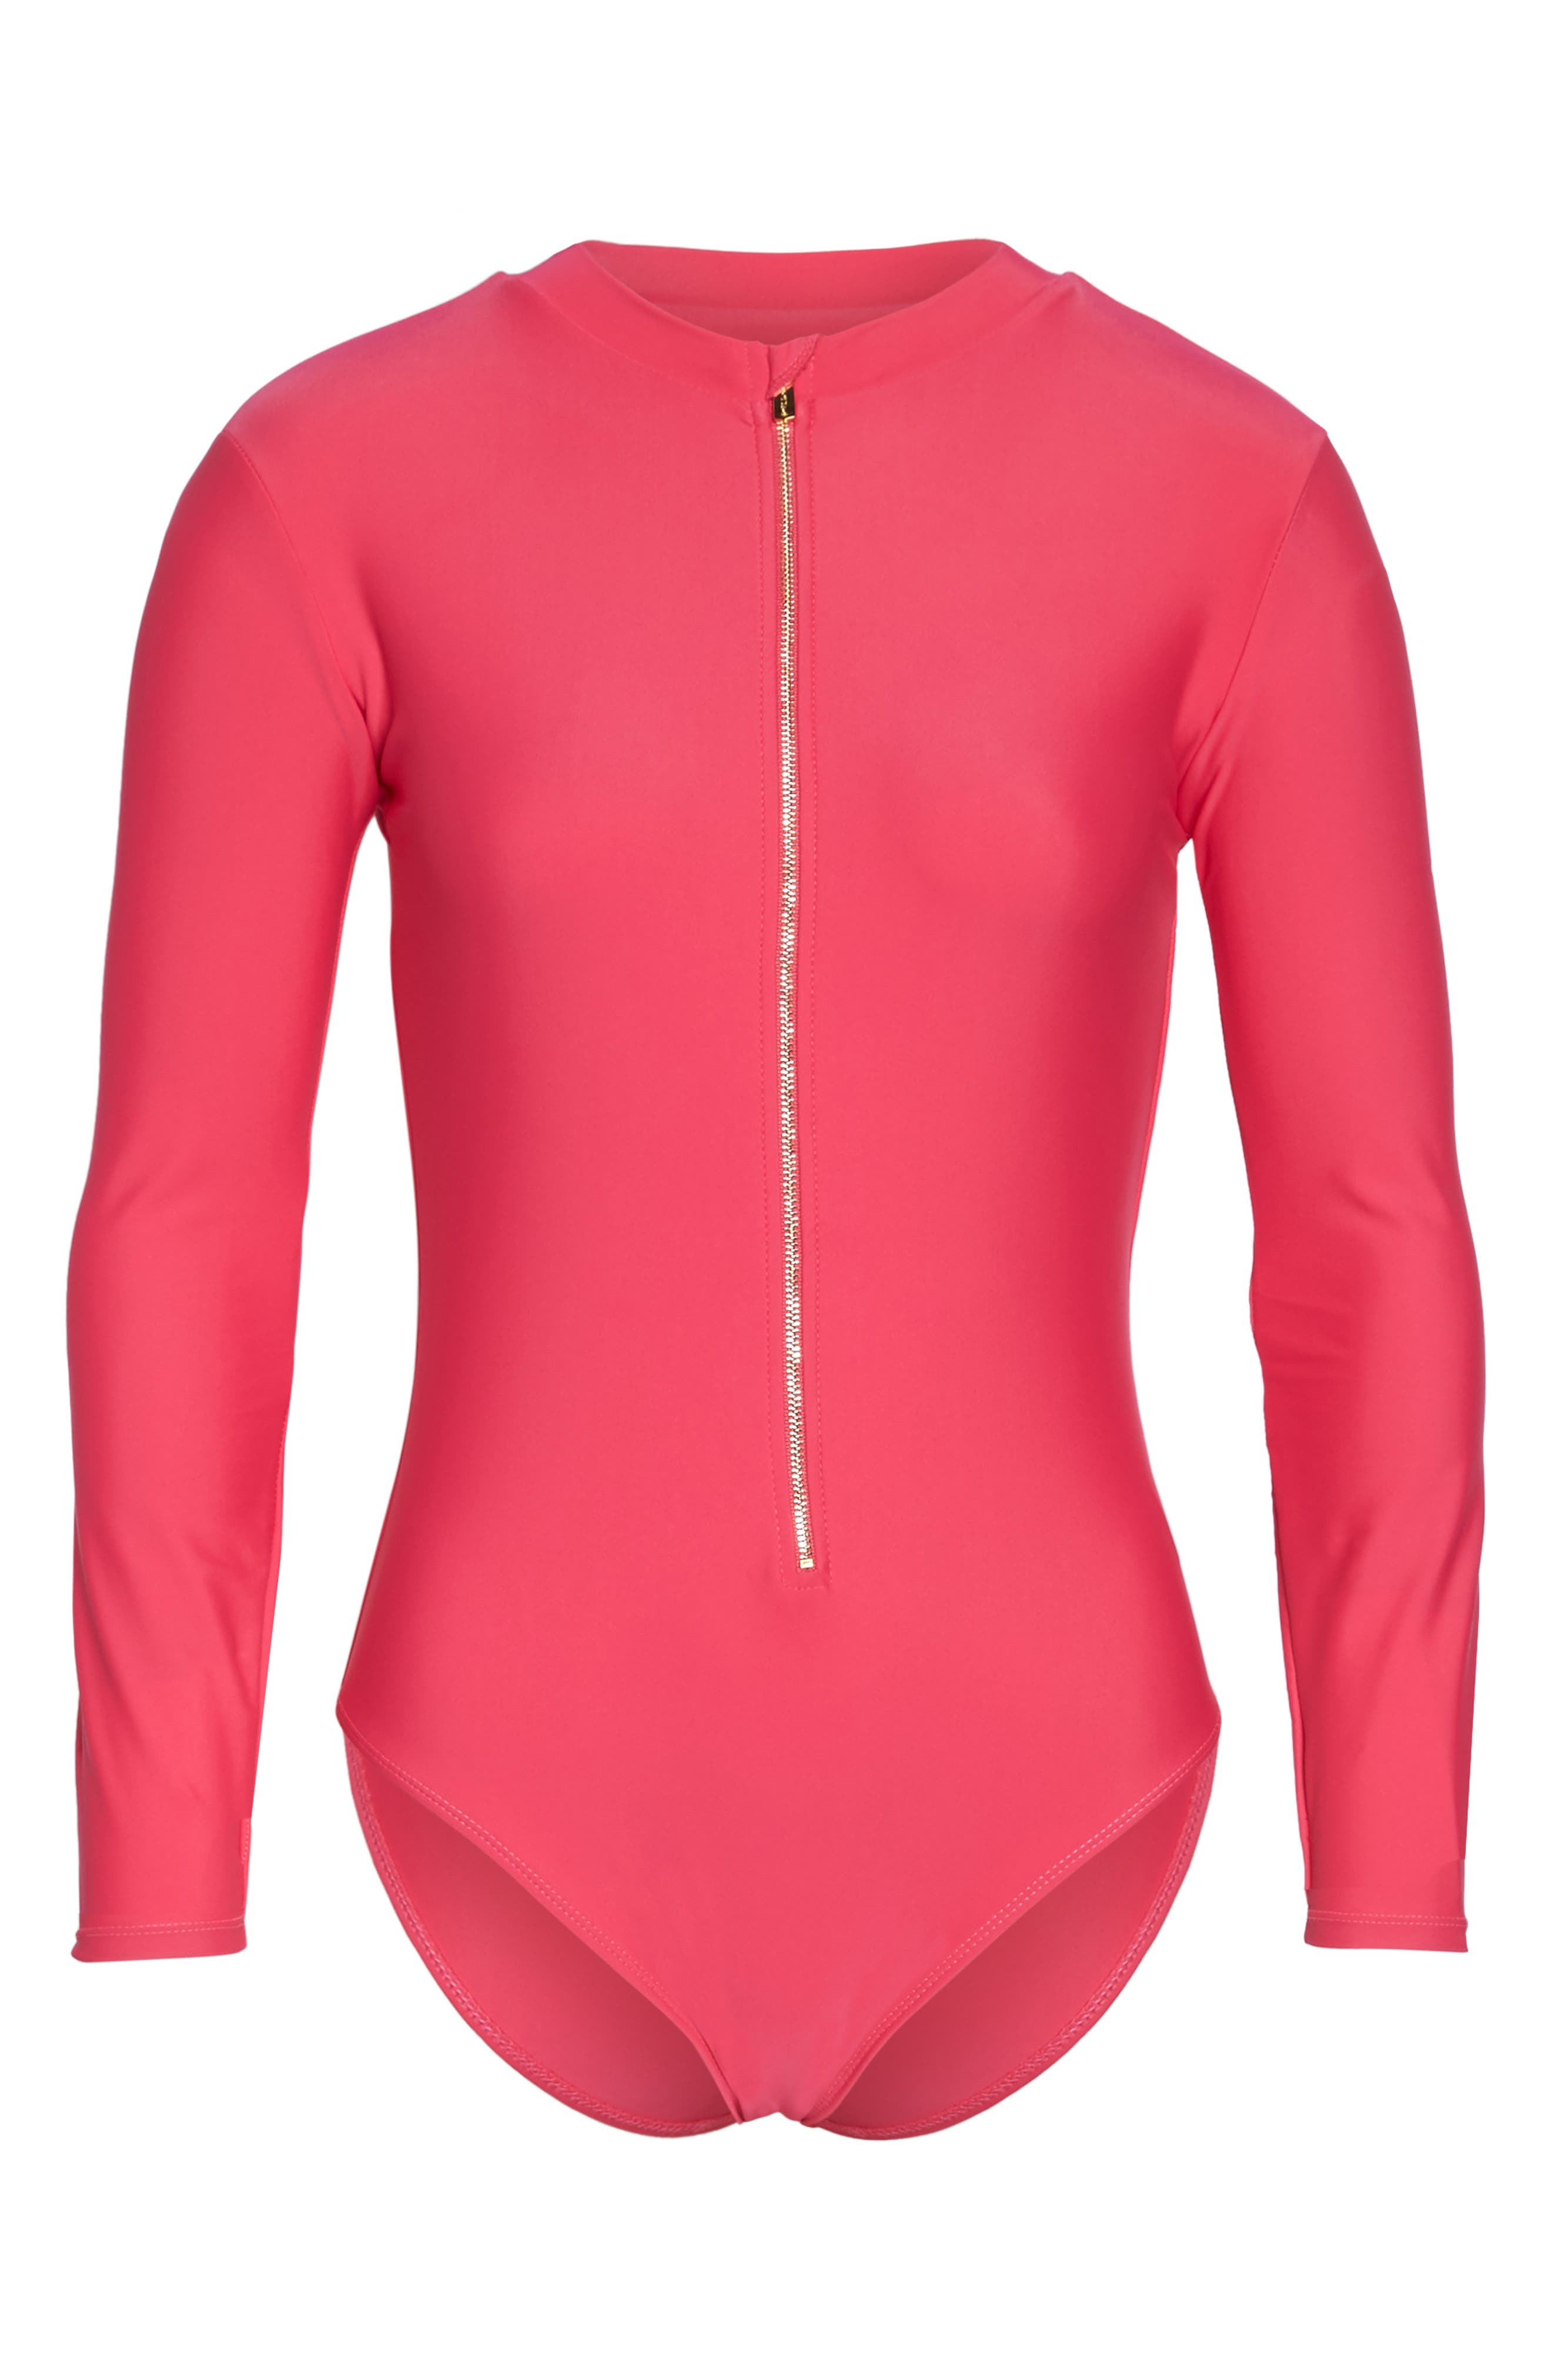 Long Sleeve One-Piece Swimsuit,                             Alternate thumbnail 6, color,